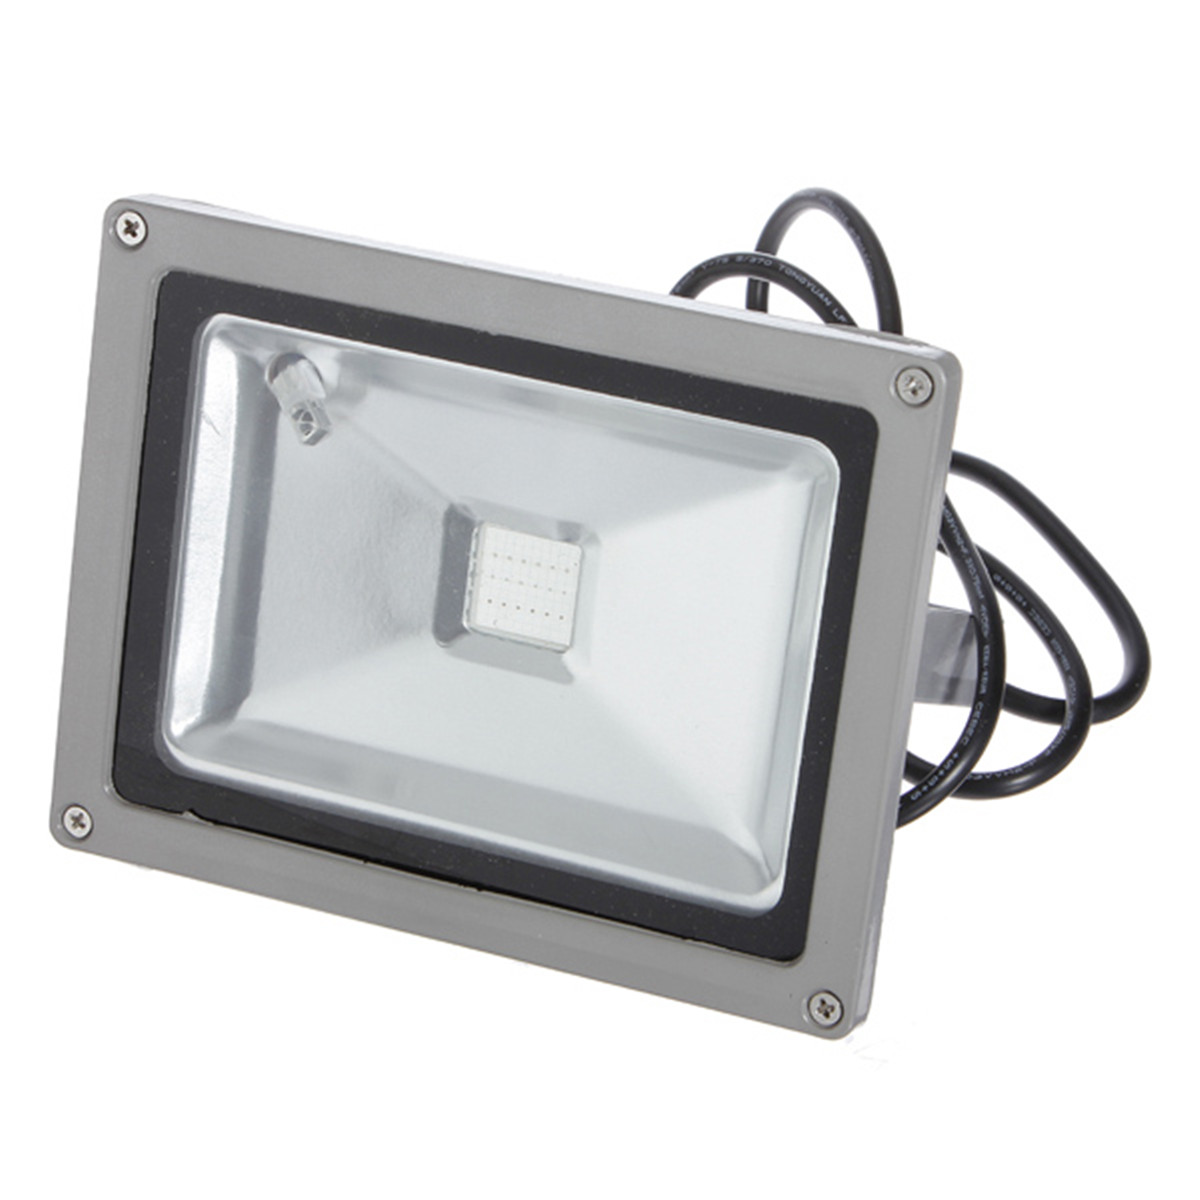 Projecteur Exterieur Led Dimmable Projecteur Led Exterieur Multiled Eclairage Led Int Rieur